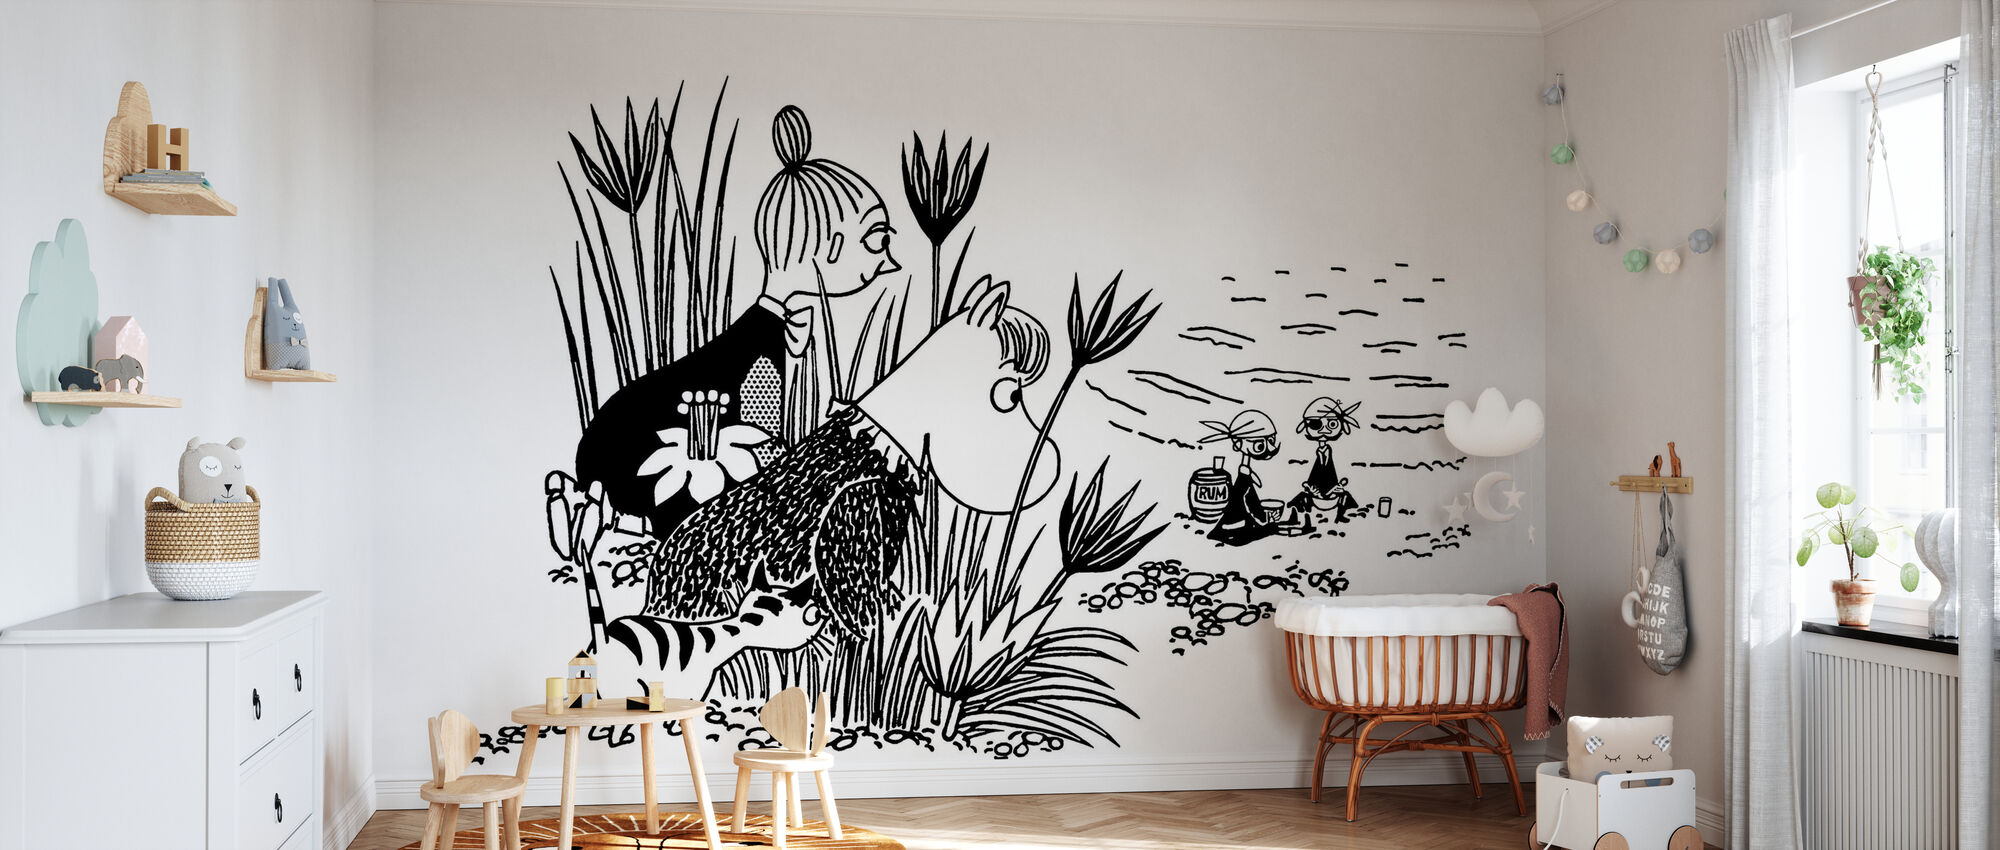 Moomin - Pirate Picnic - Wallpaper - Nursery